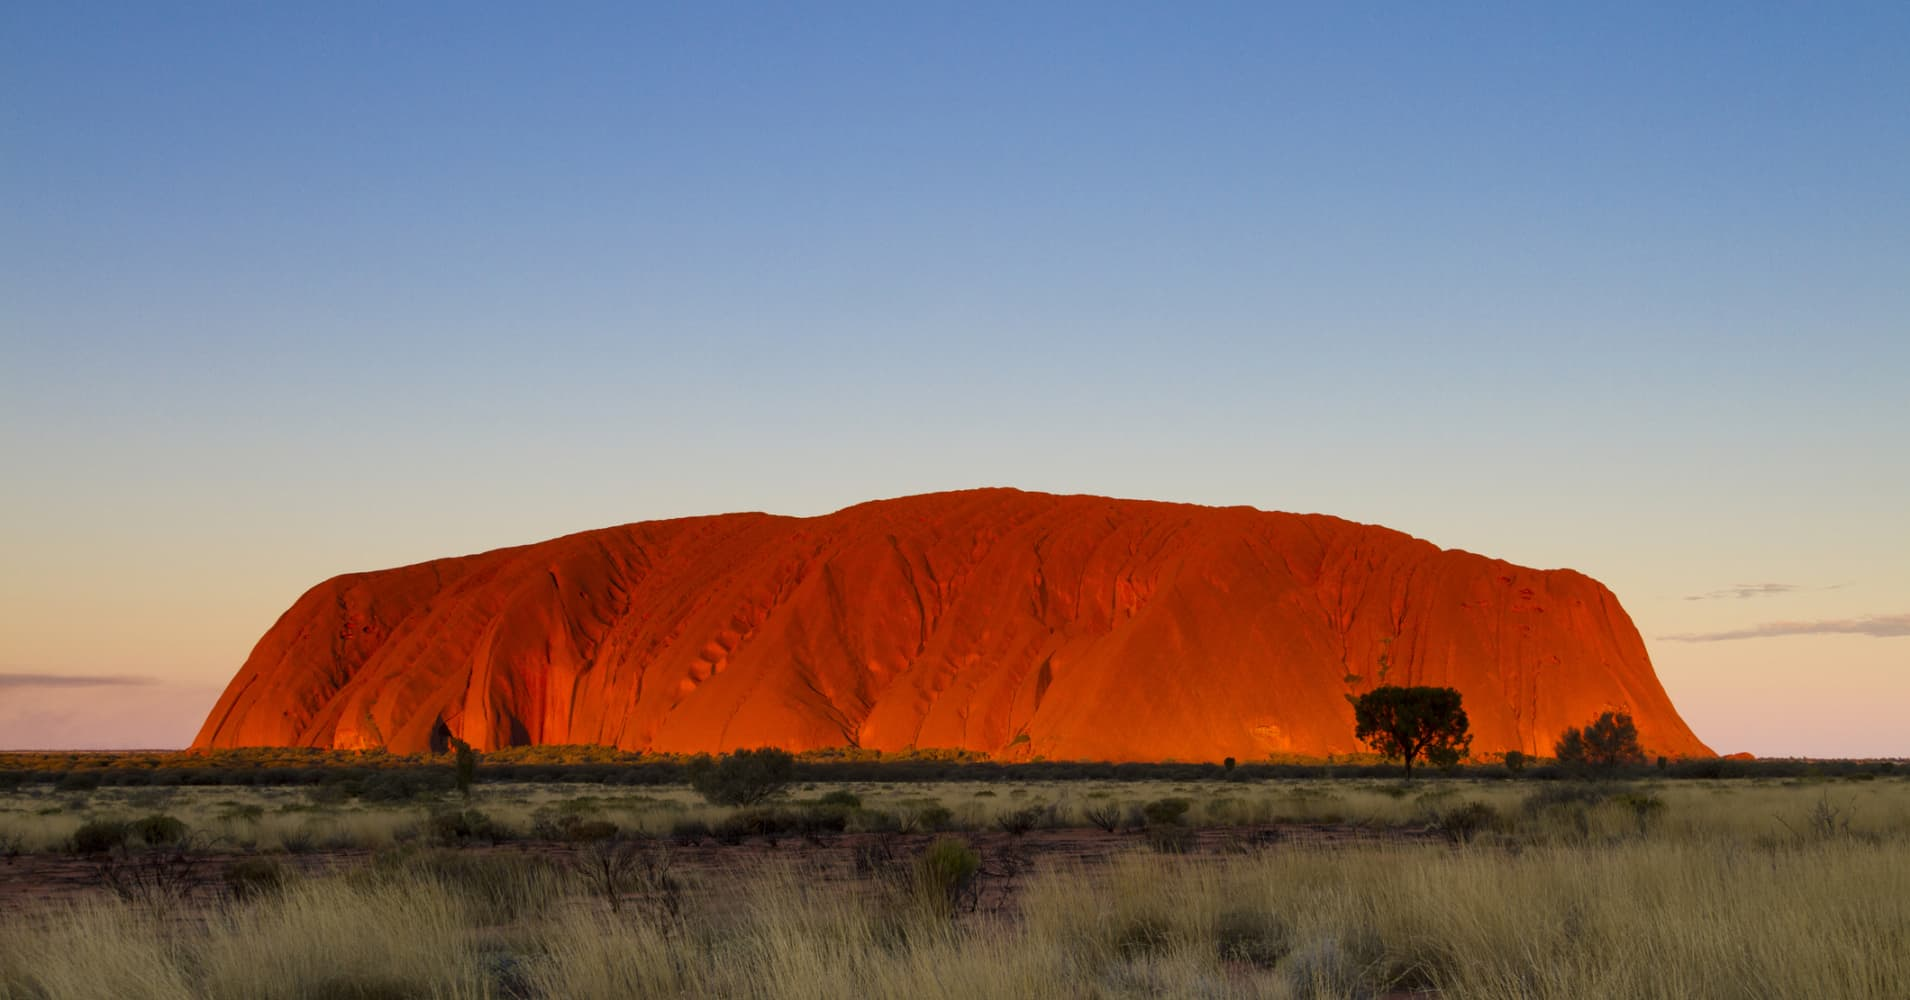 Australia's famed Uluru outback monolith to be closed to climbers